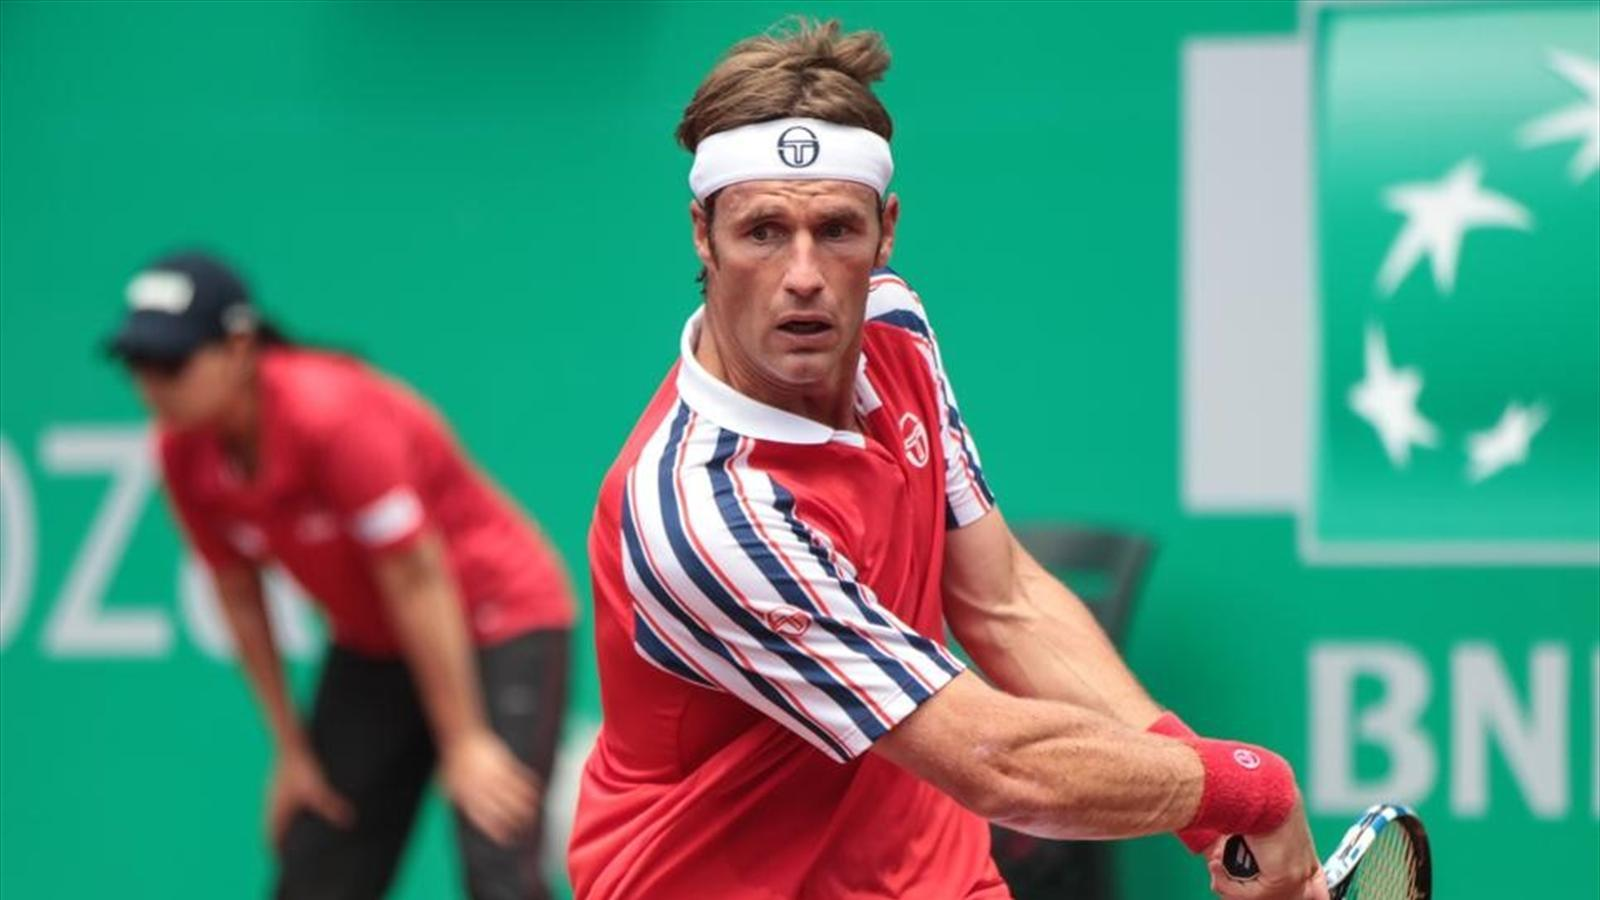 gimeno loses to david ferrer bulge french open 12015